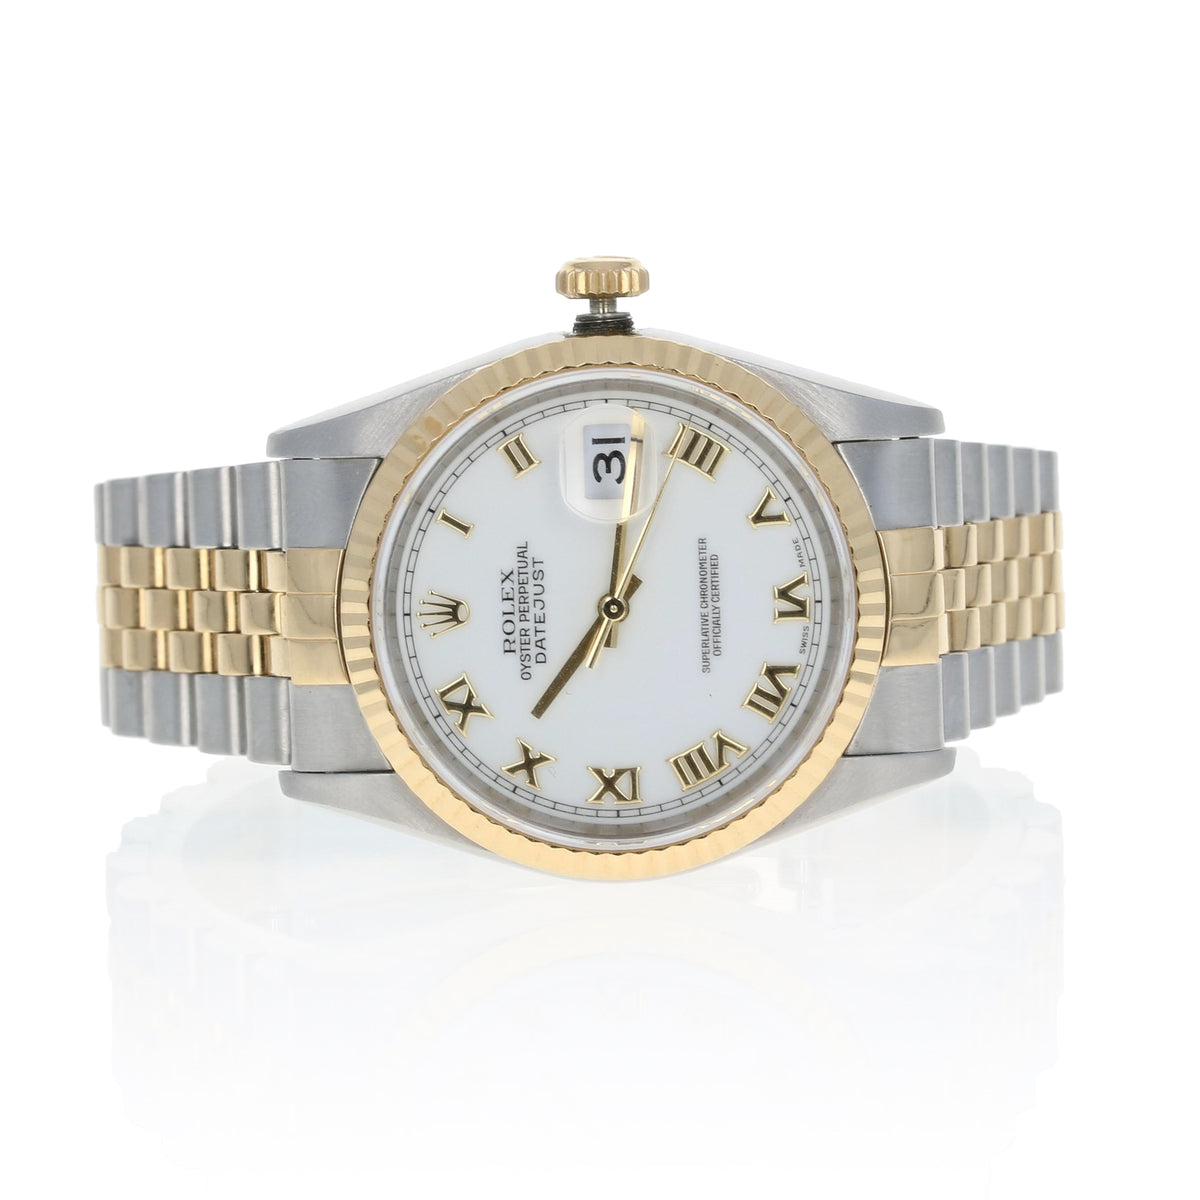 Rolex Oyster Datejust Men's Watch Stainless Steel & Yellow Gold 16233